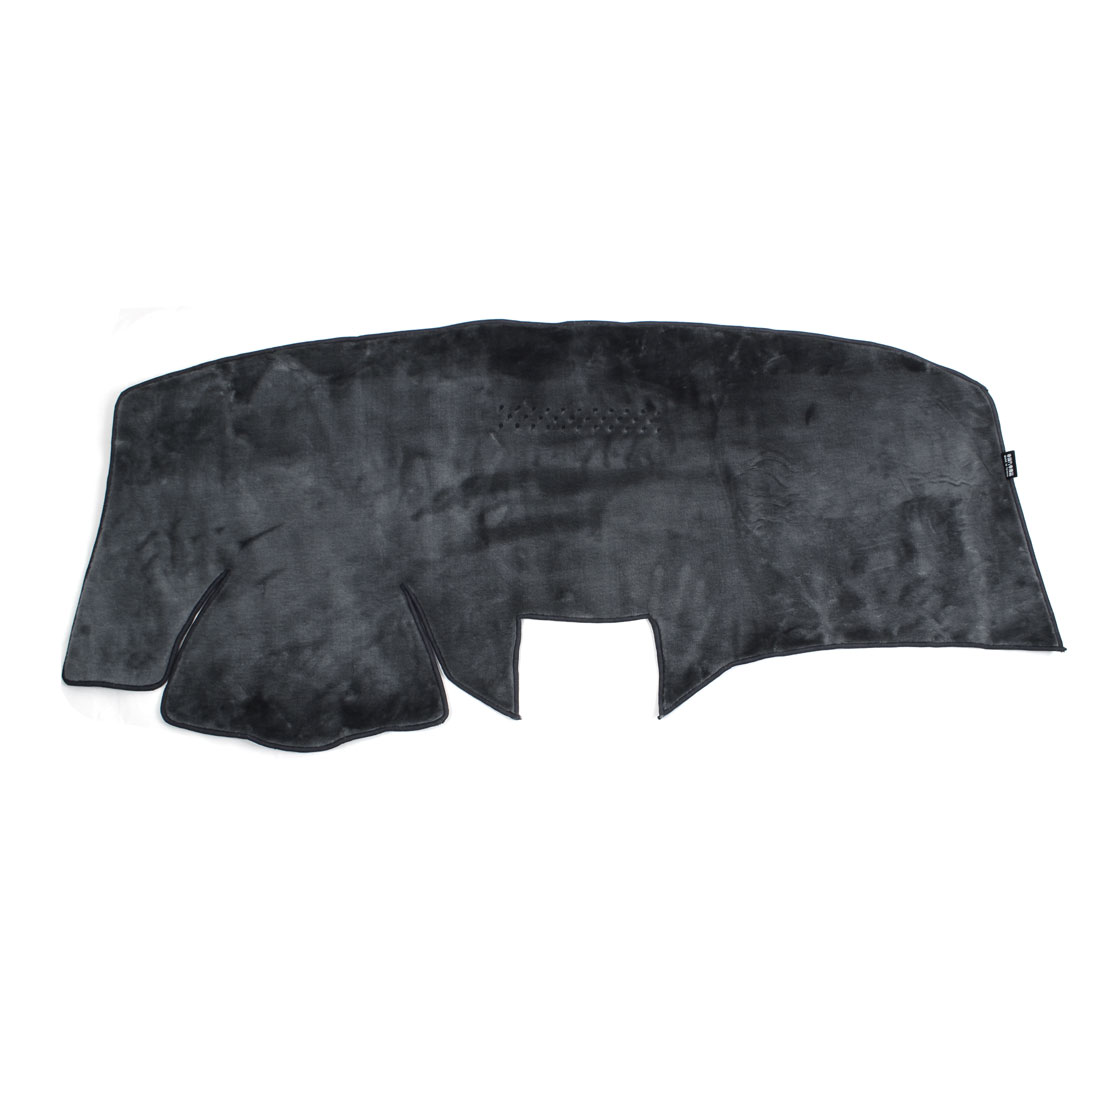 Car Dashboard Sun Cover Mat Carpet Black for 2008 Ford-3 Carnival